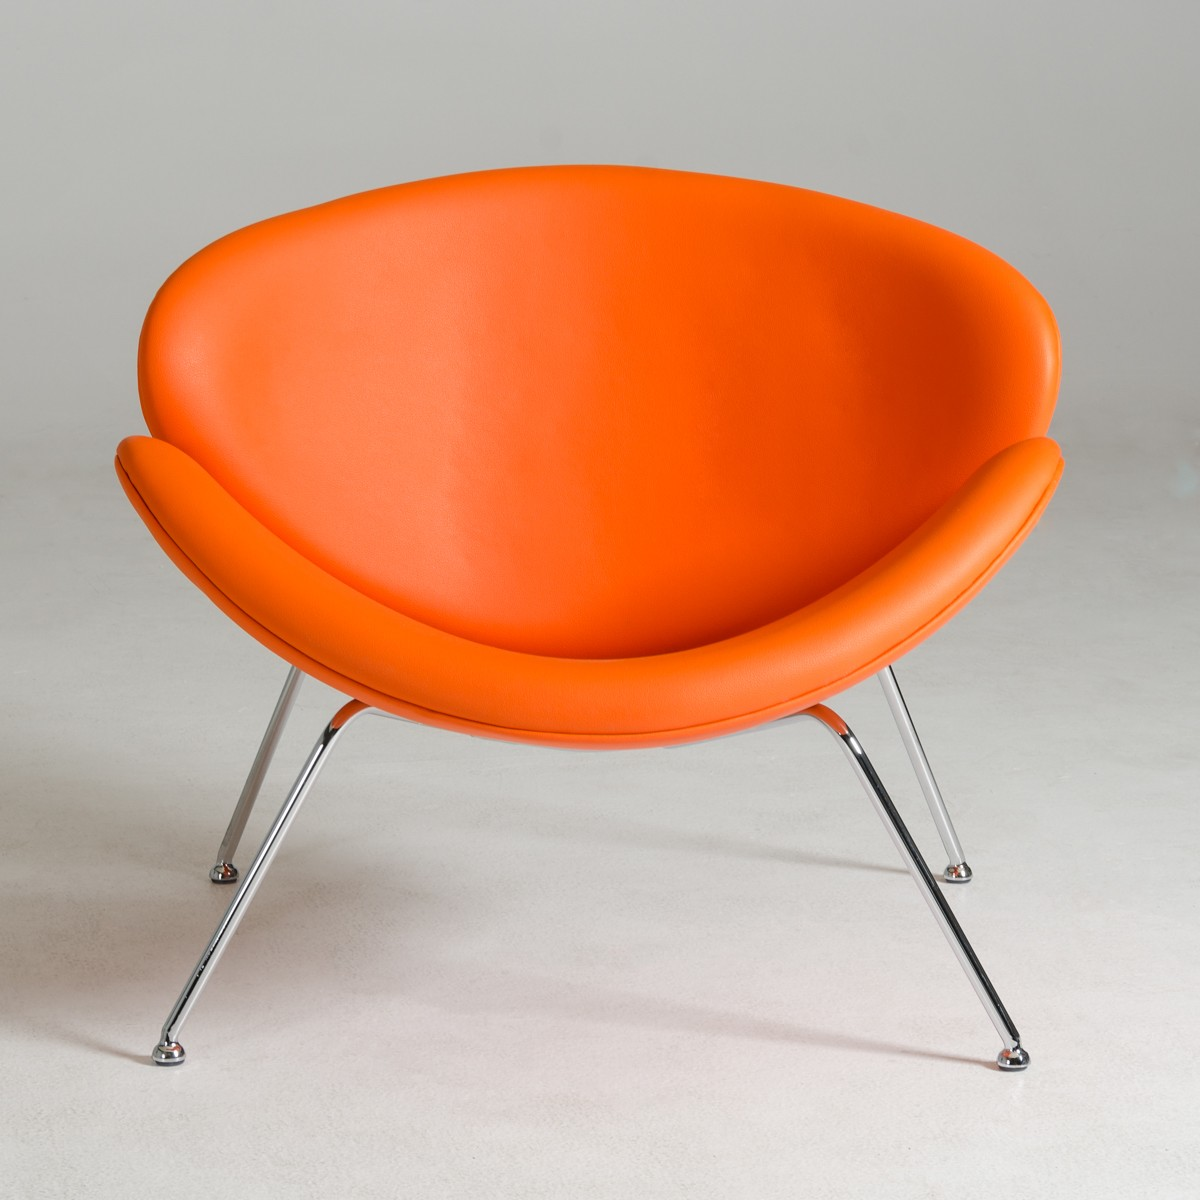 Contemporary Orange Leatherette Stainless Steel Legs Chair ...